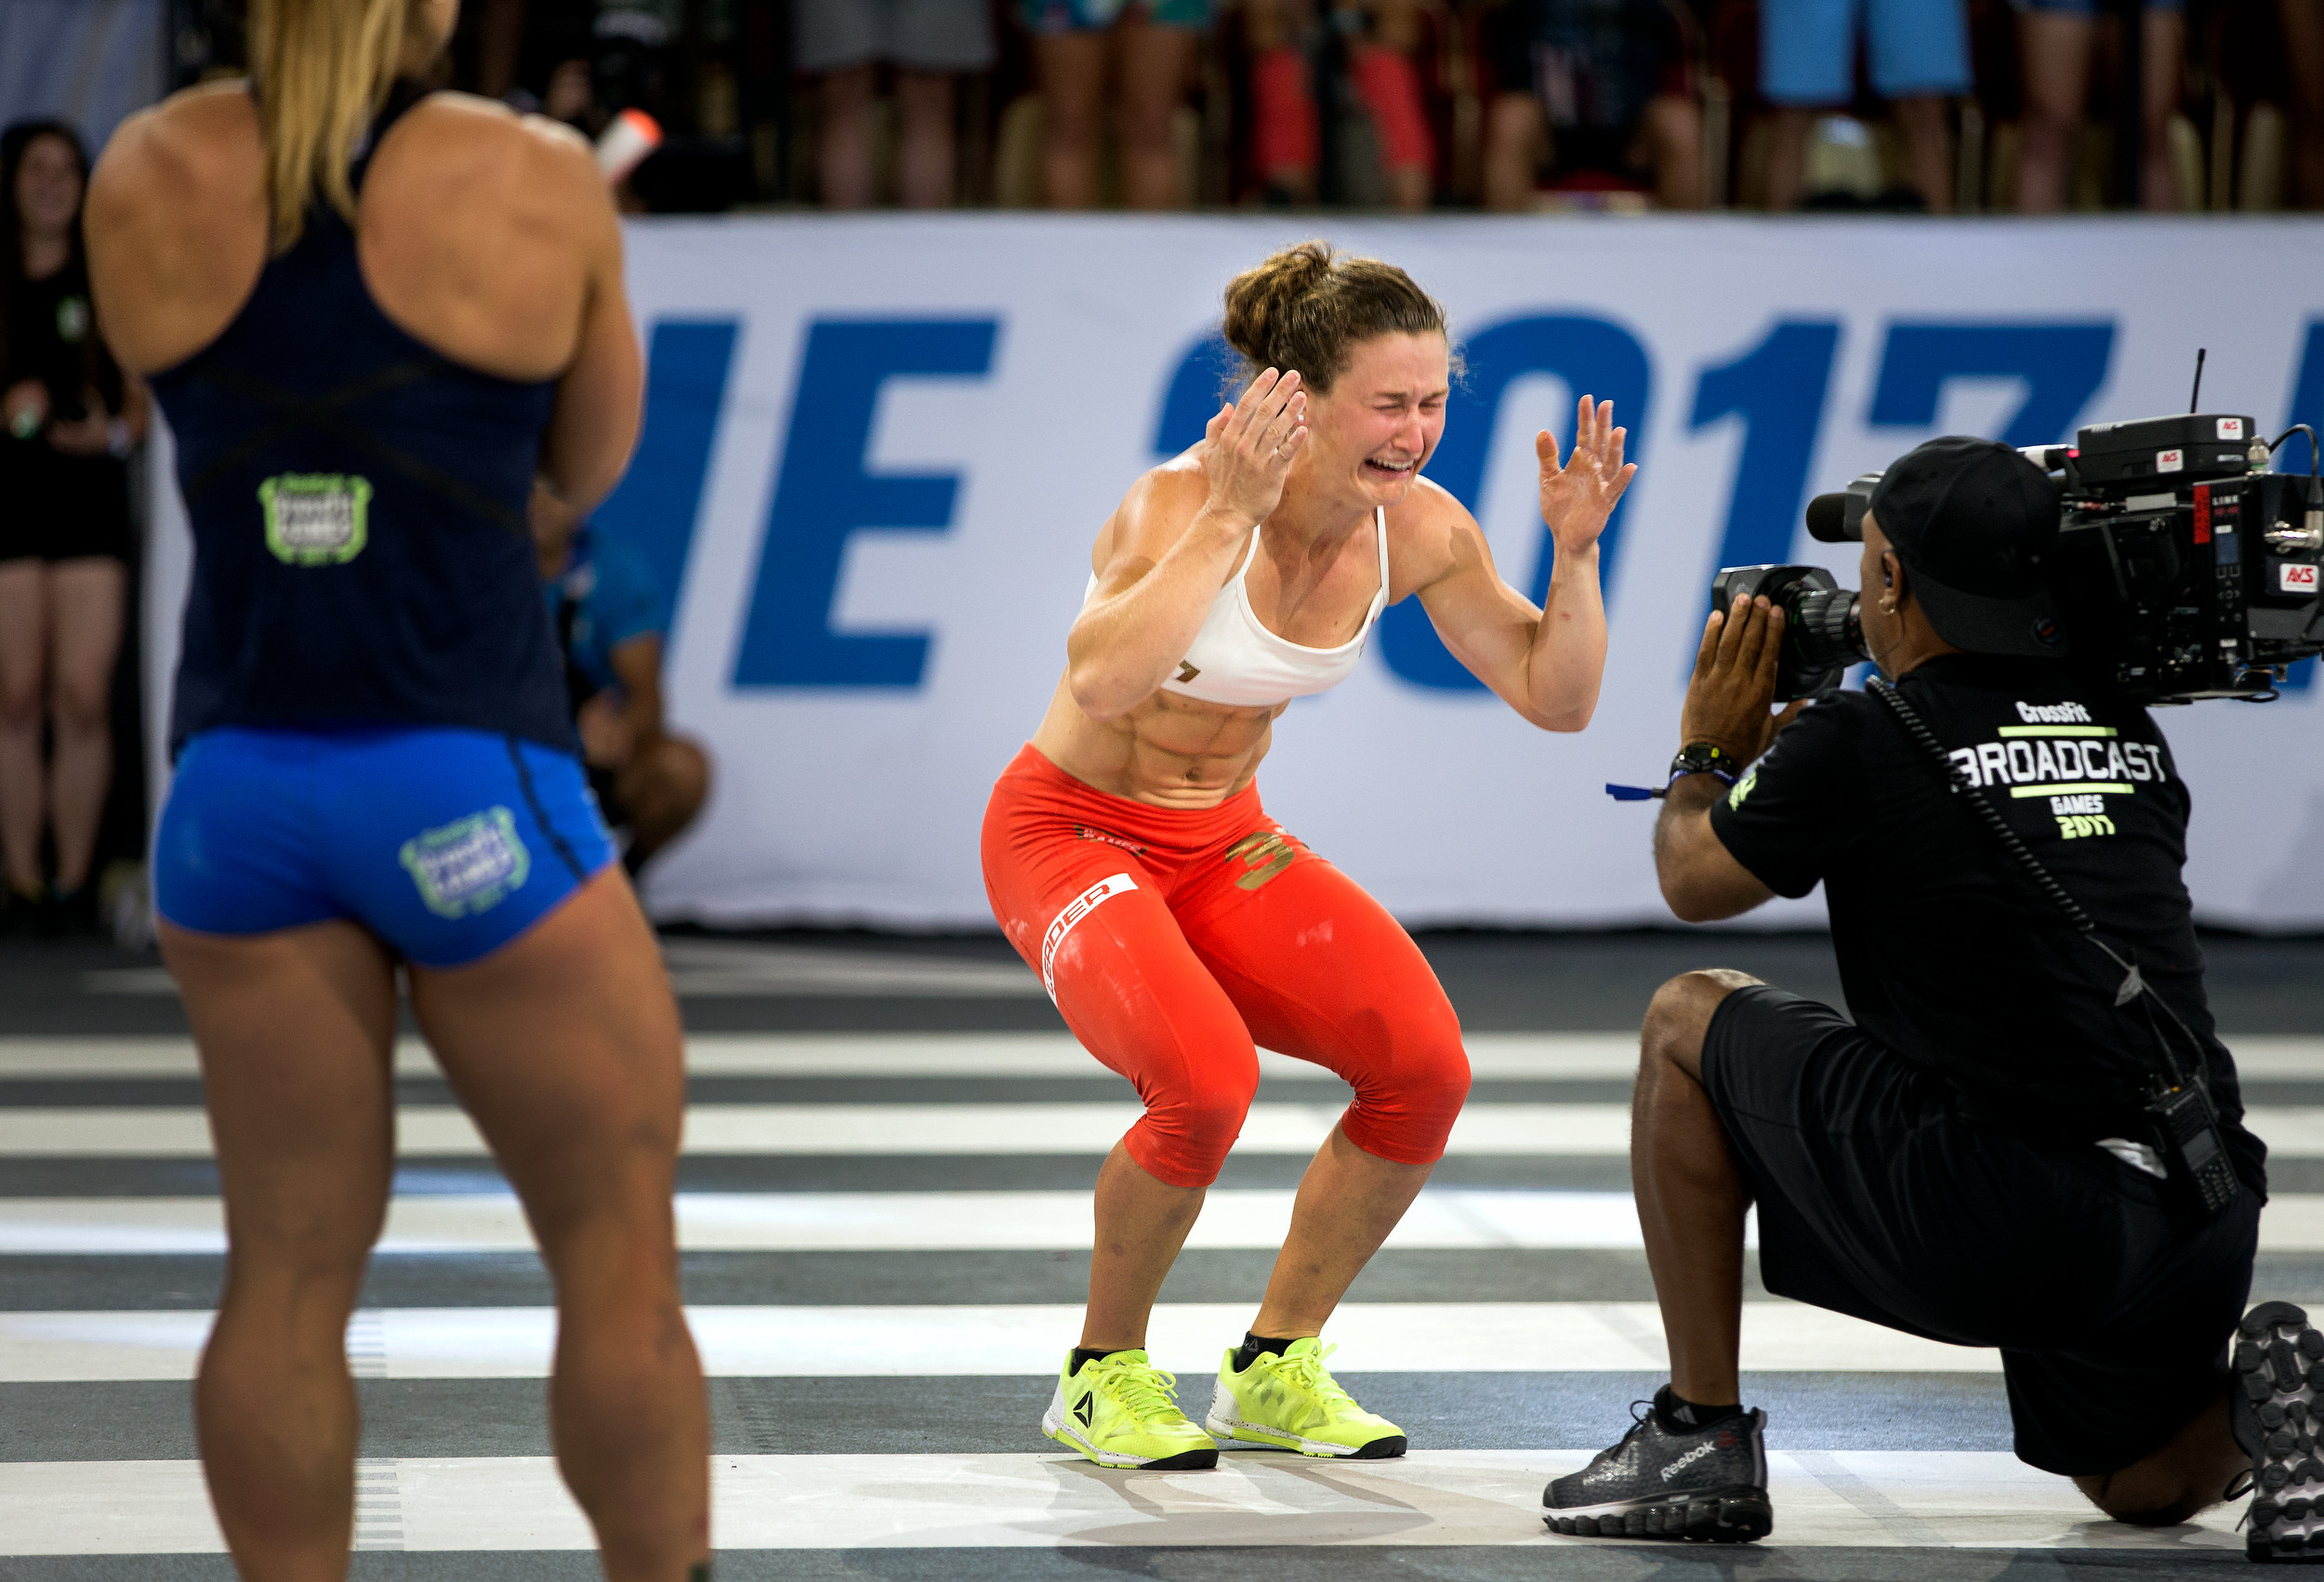 The moment Tia Toomey was crowed Fittest Woman on Earth in 2017